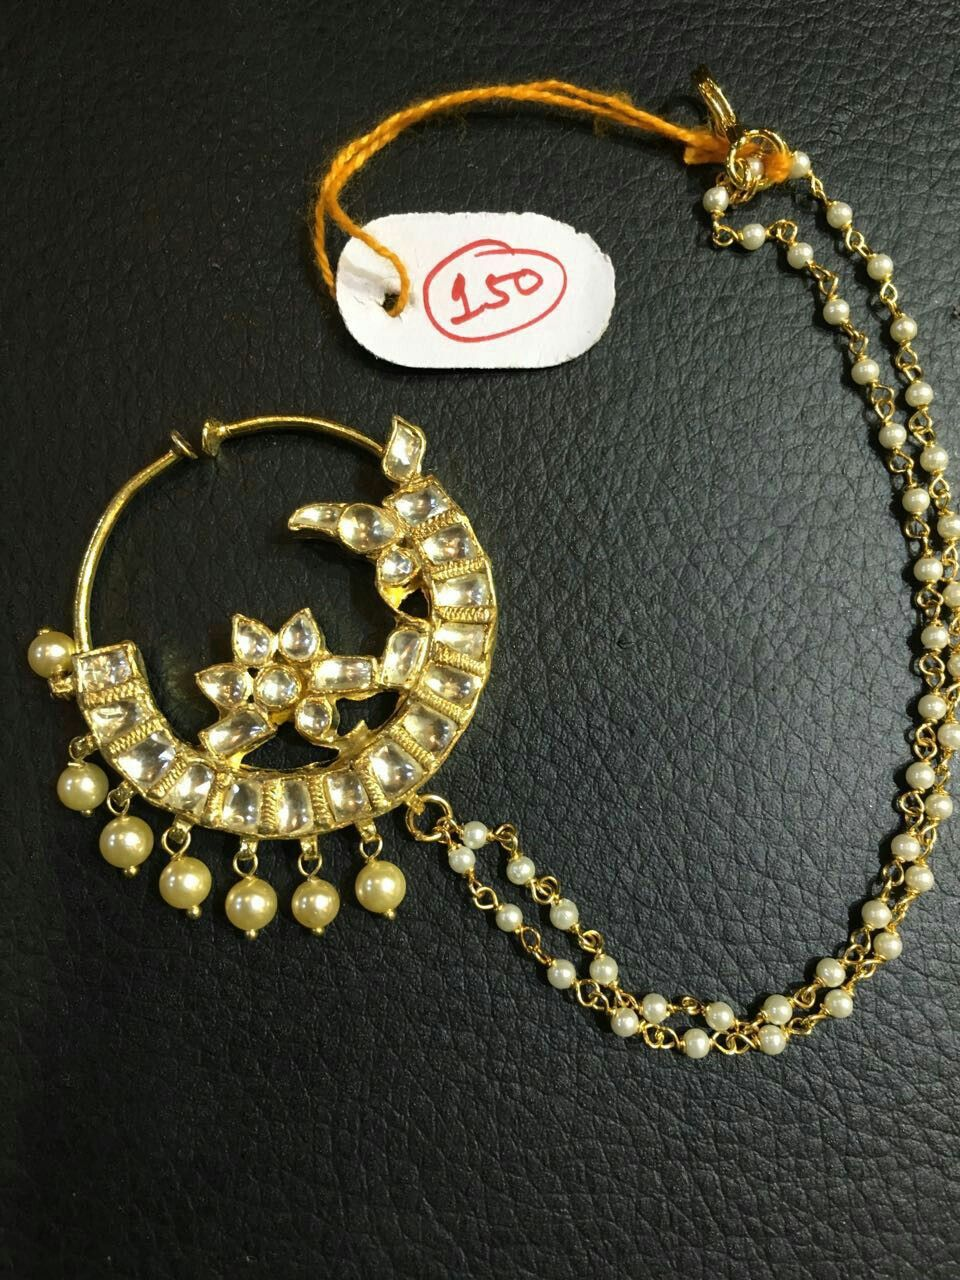 About nath nose ring mukku pudaka on pinterest jewellery gold nose - Nath Nose Ring Punjabi Bride